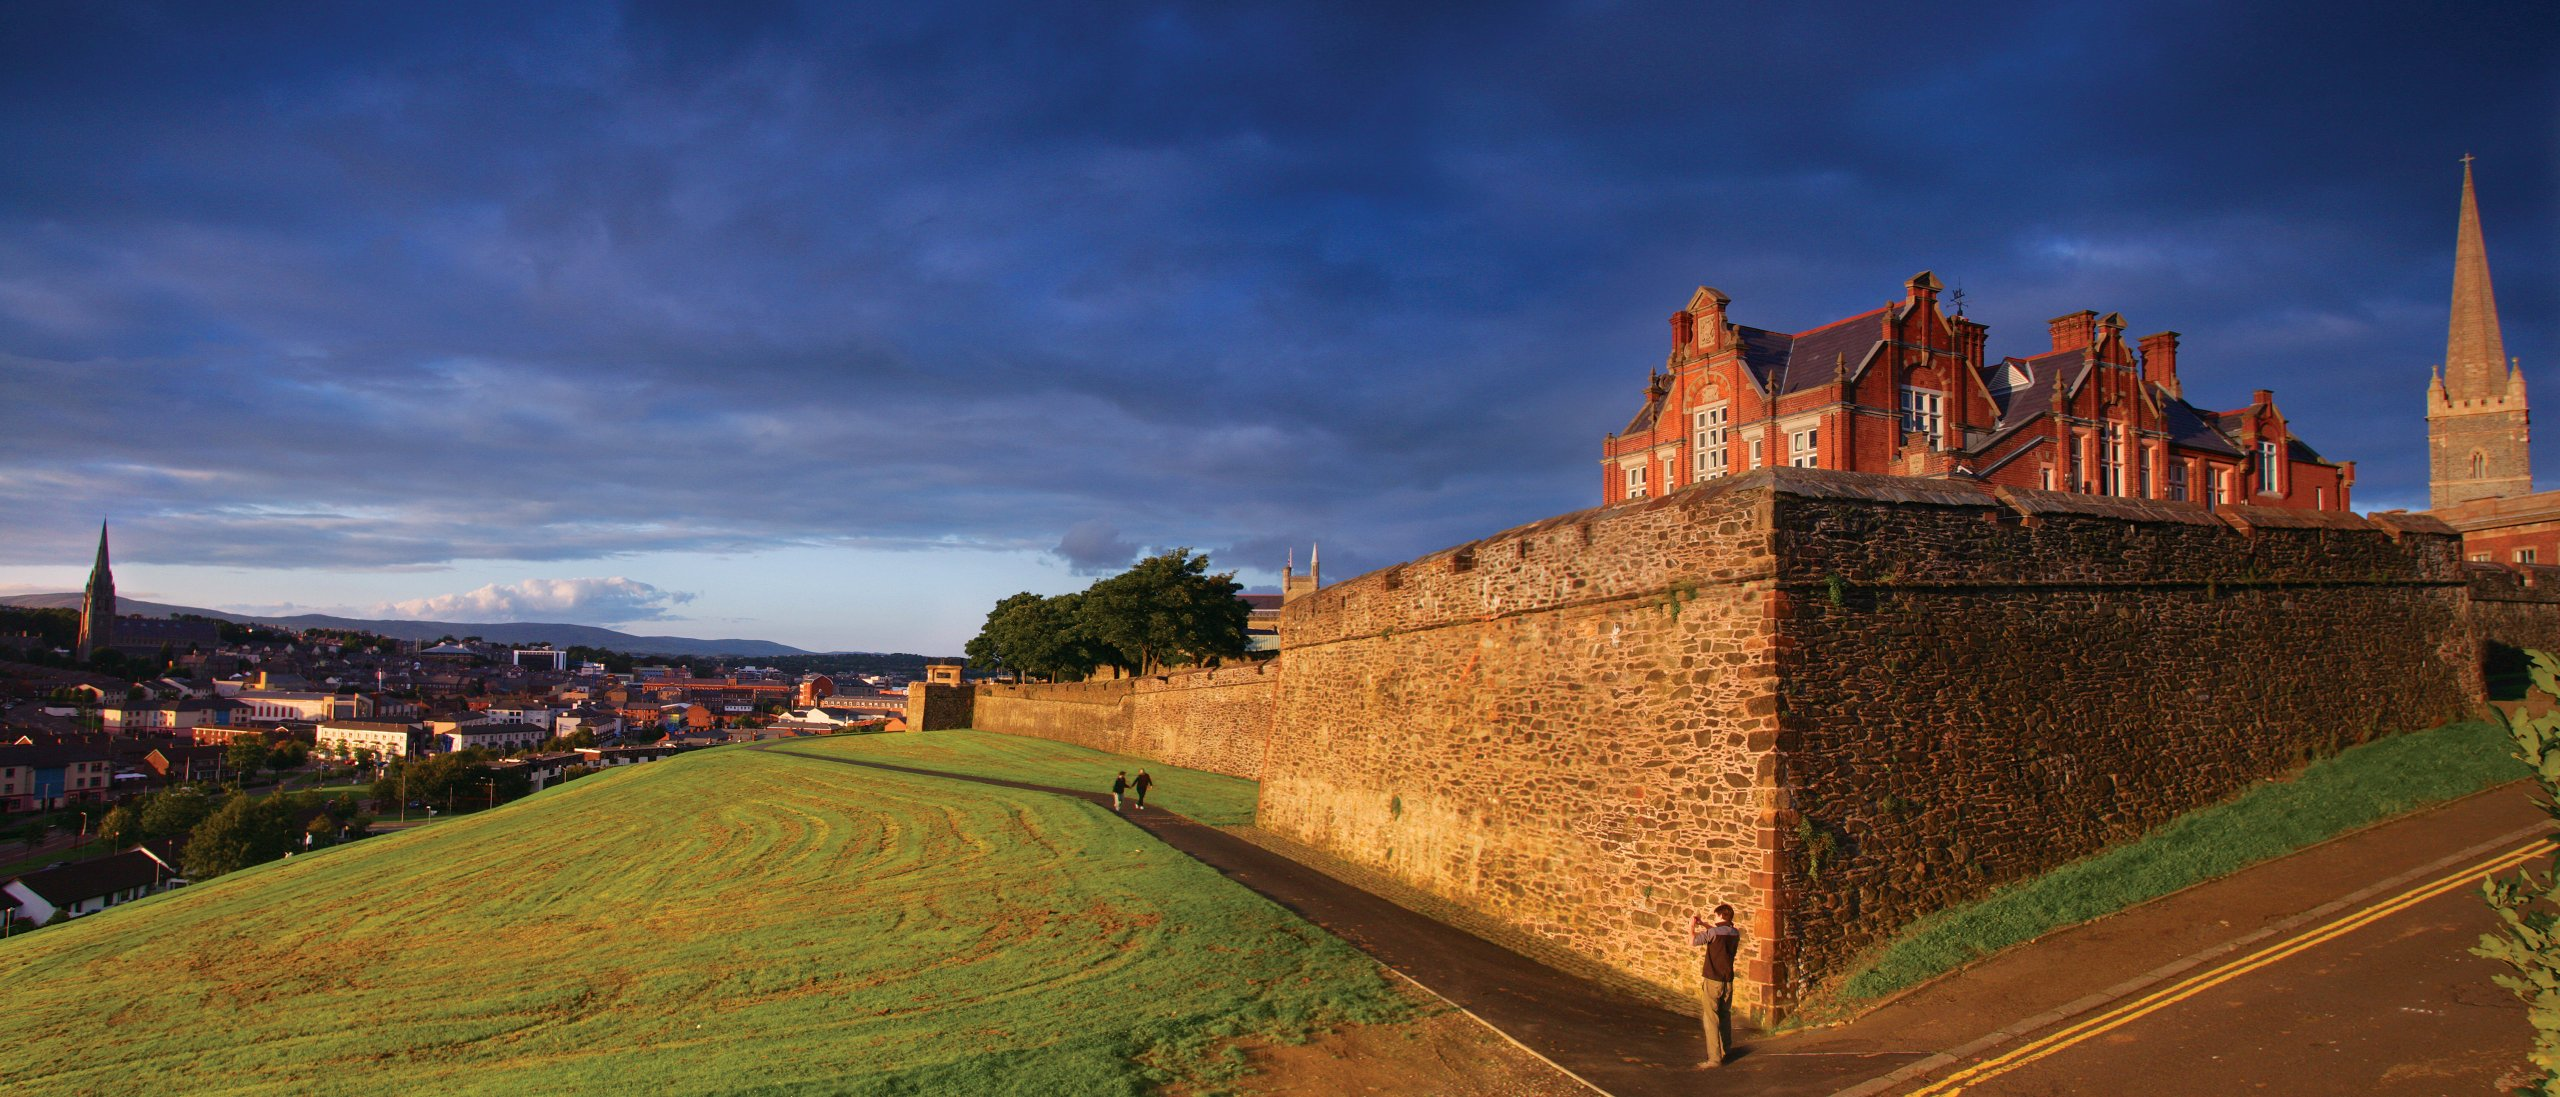 Sunlight catches the 17th century walls of Derry, Ireland's only walled city